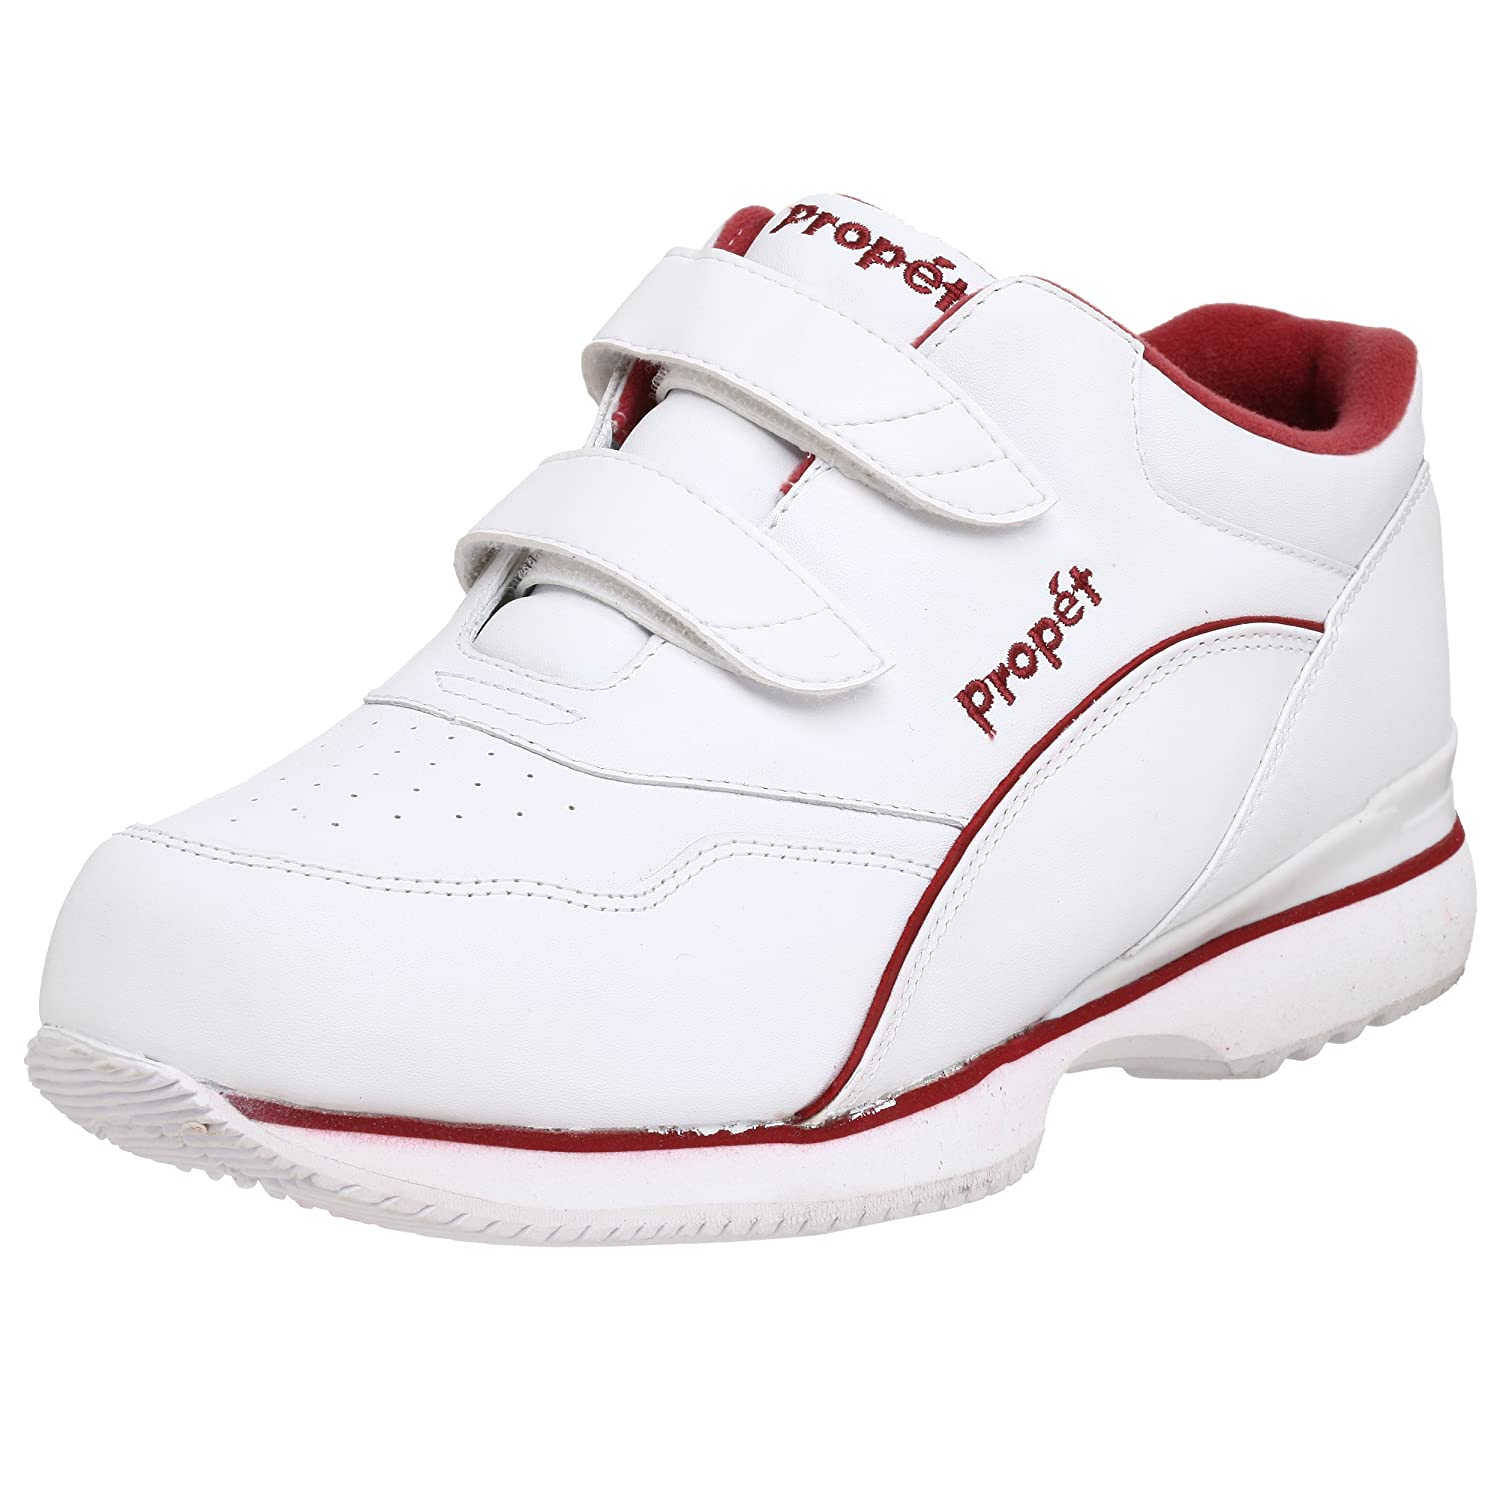 Propet Women's Tour Walker Strap Sneaker B000BO62L6 6.5 XX US|White/Berry